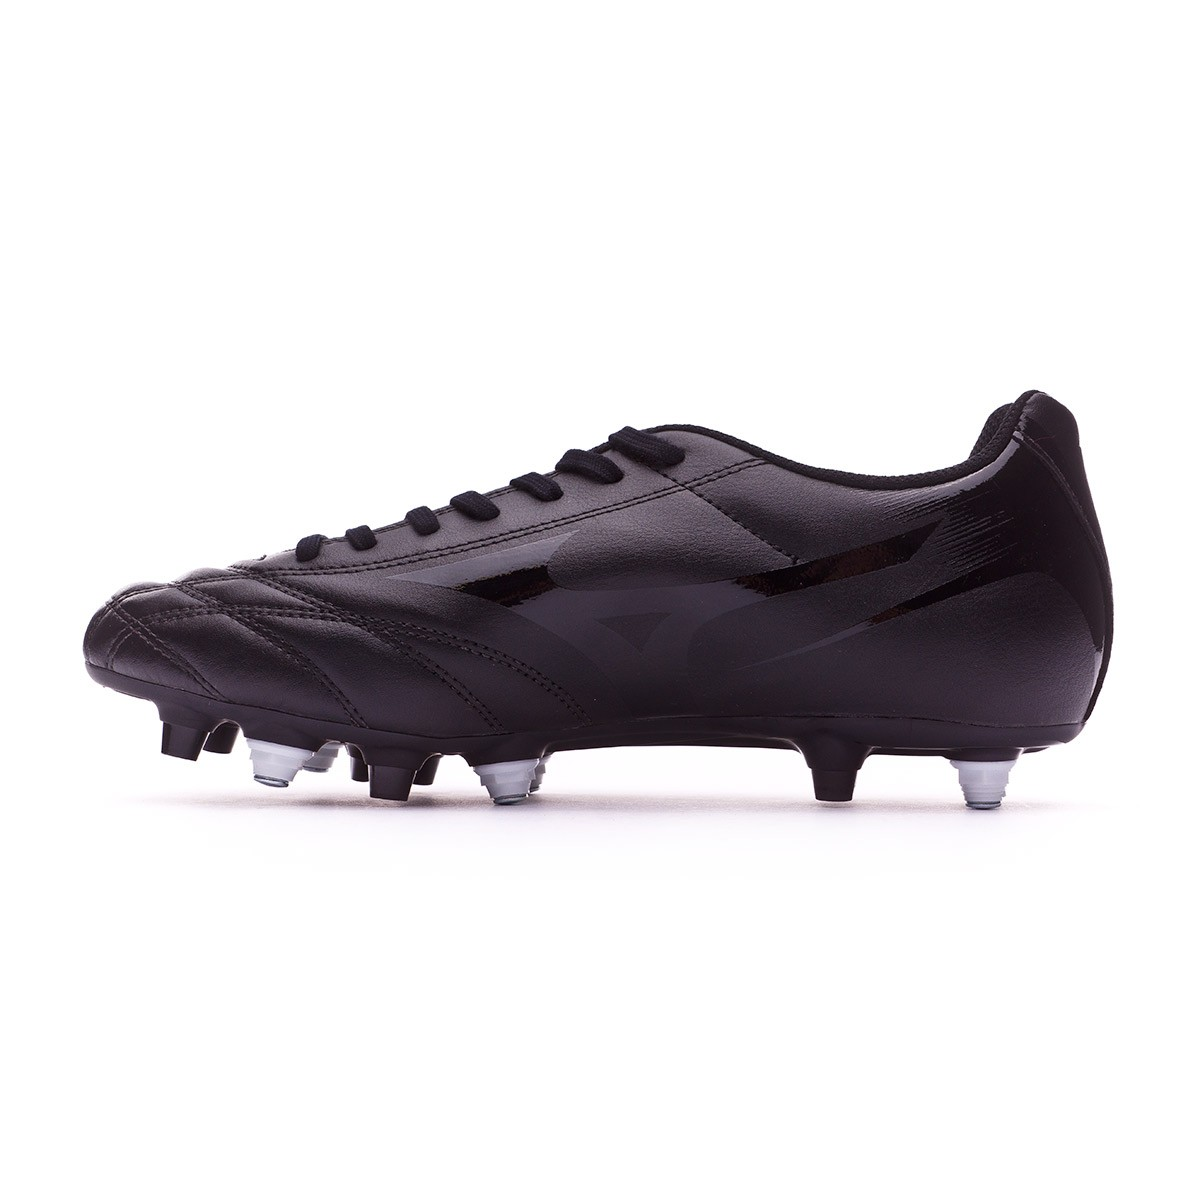 c79881a7e Football Boots Mizuno Monarcida NEO MIX Black - Football store Fútbol  Emotion